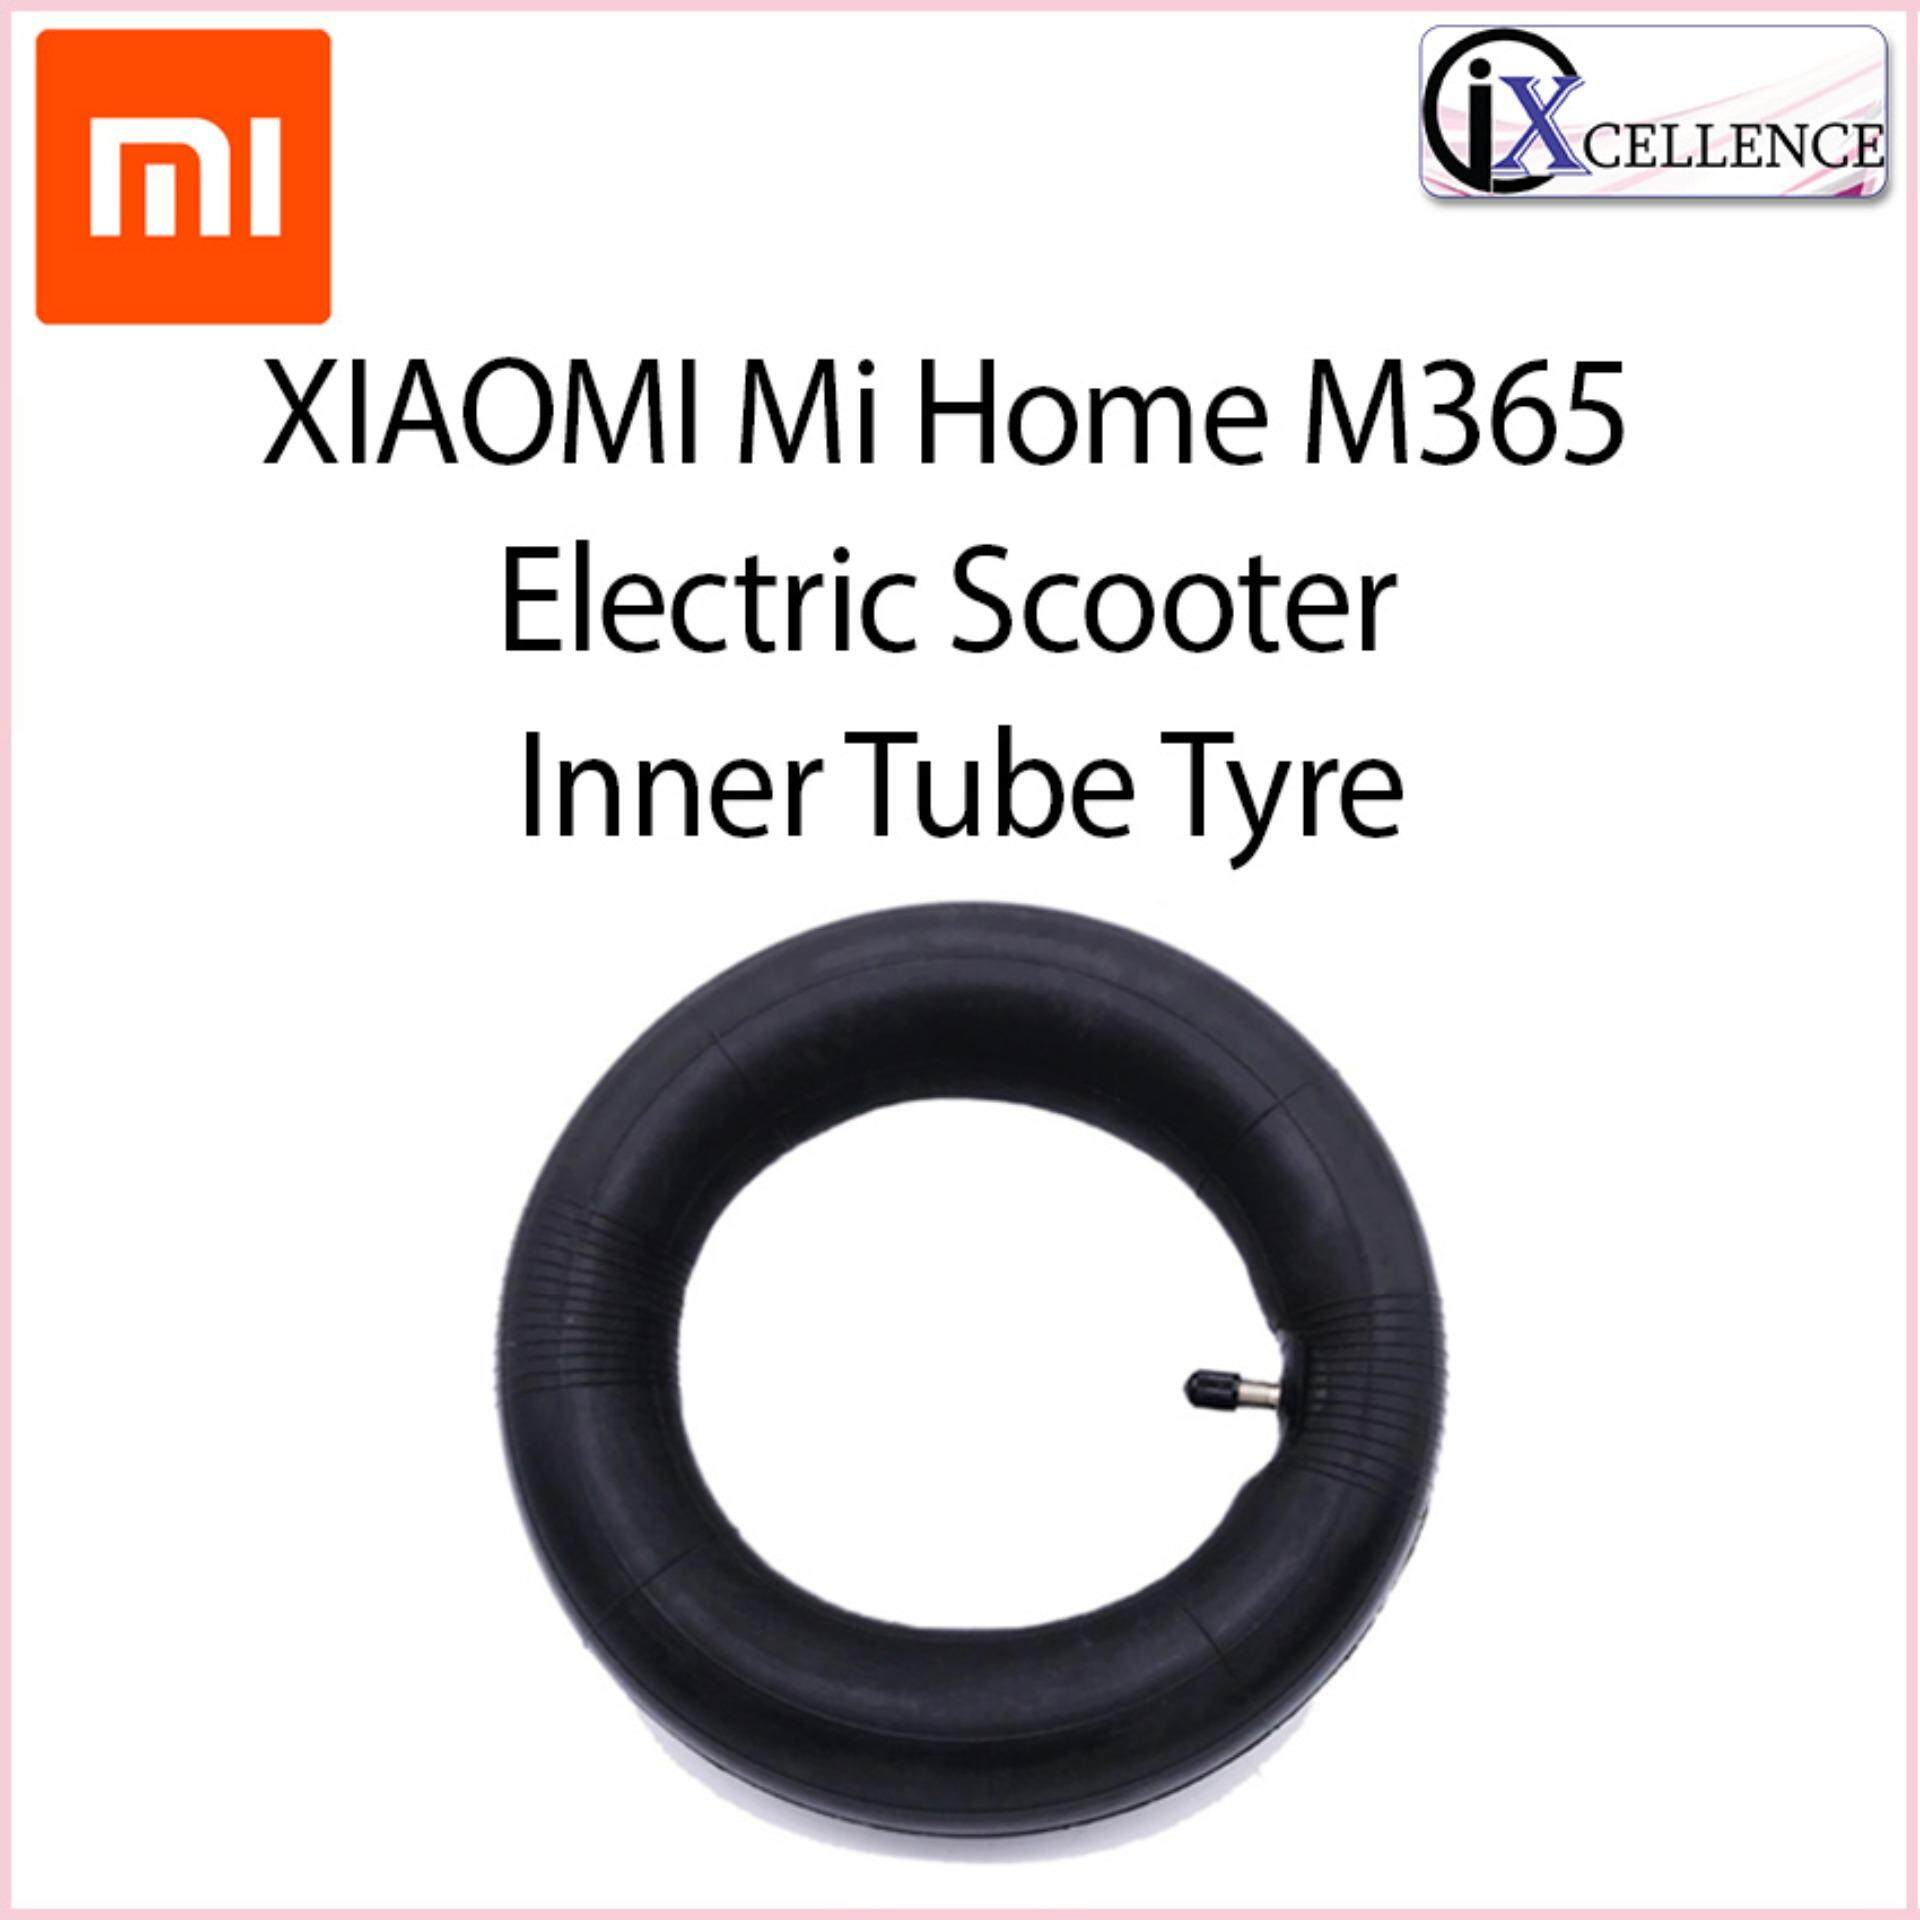 [IX] XIAOMI Mi Home M365 Electric Scooter Inner Tube Tyre for Rear